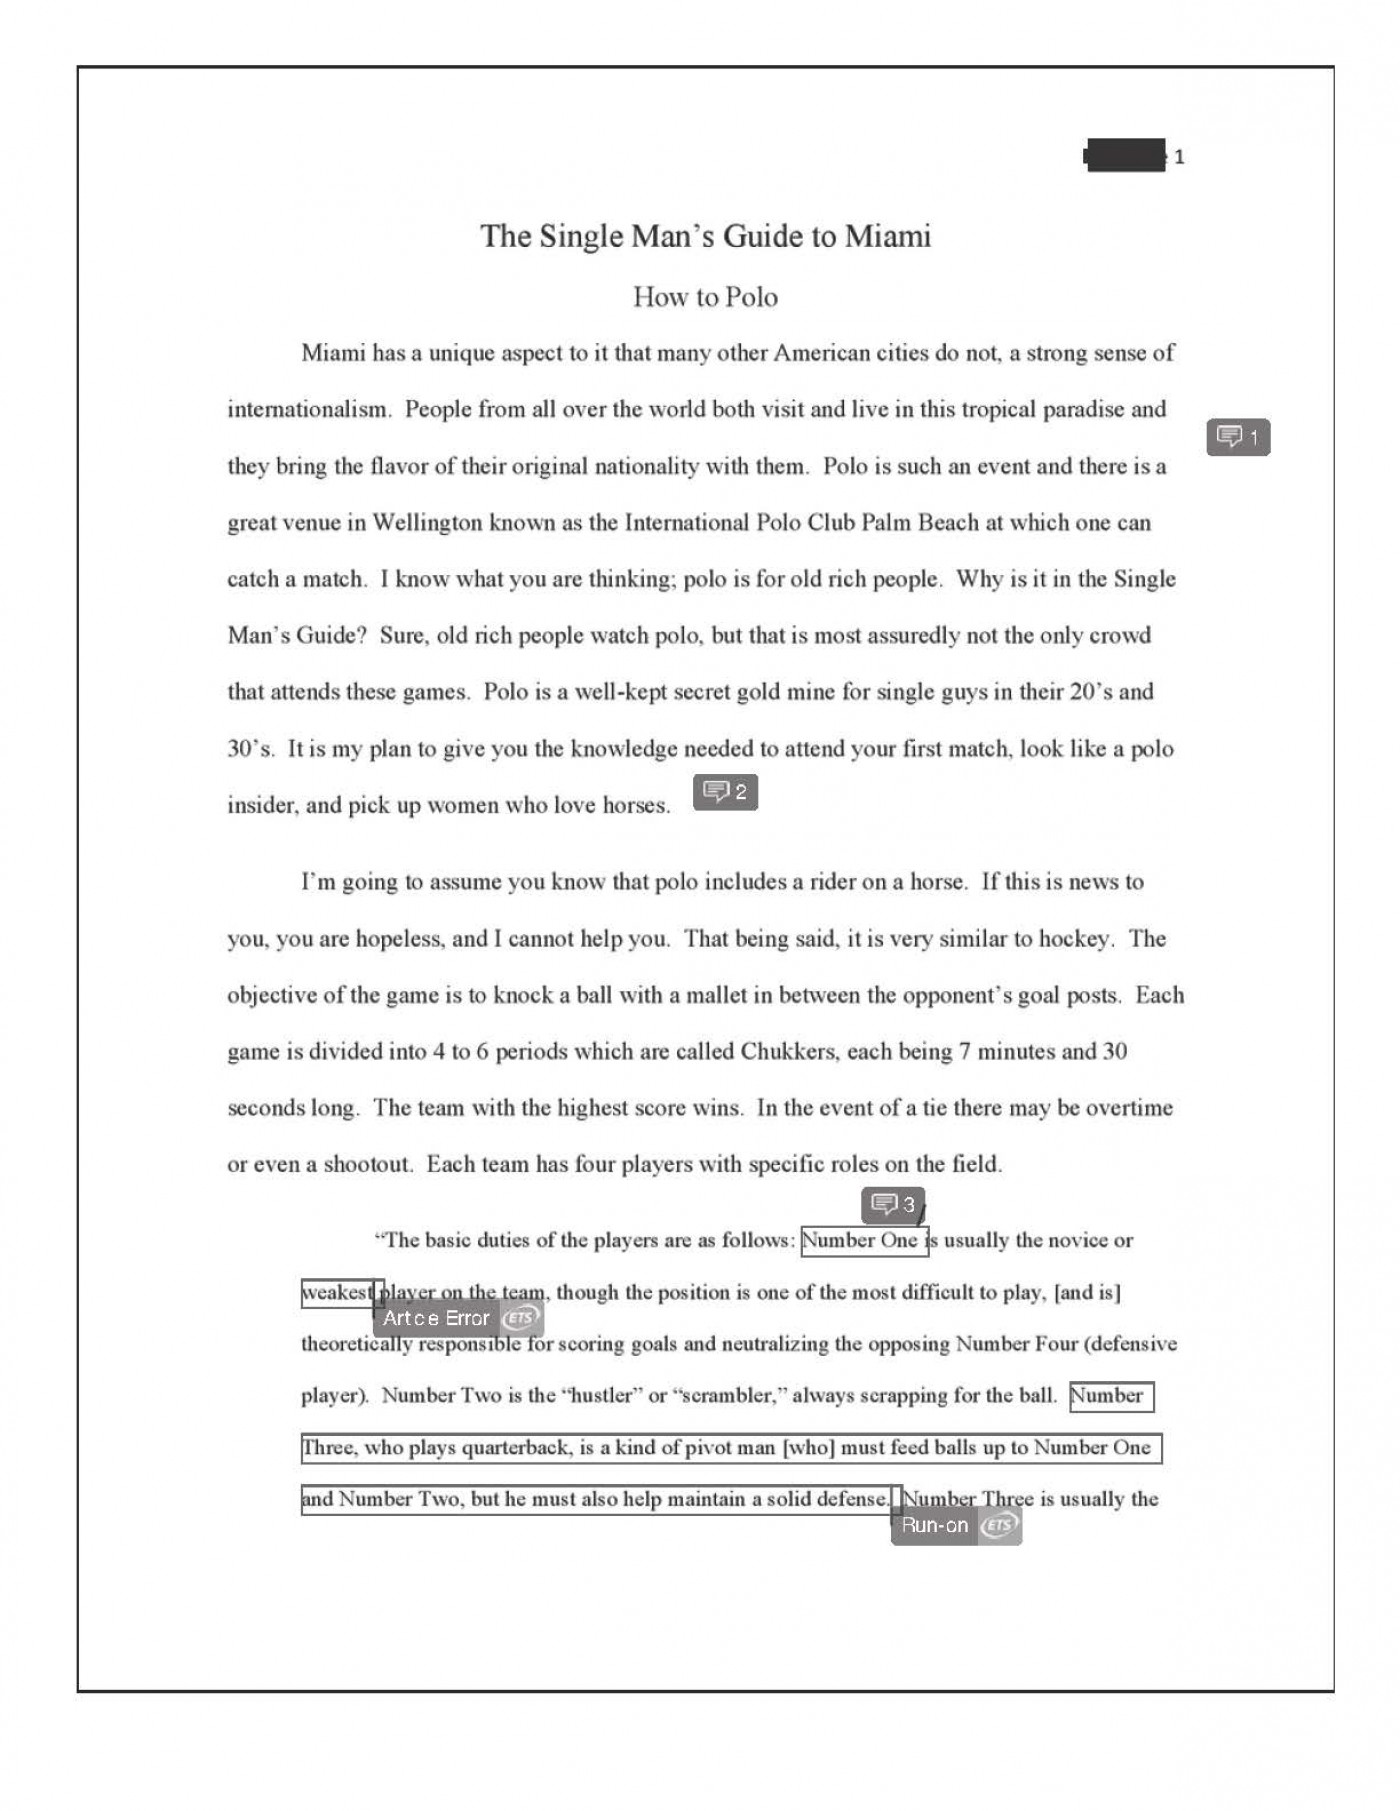 005 Informative Essay Topics Essays Sample Funny Argumentative For Middle School Final How To Polo Redacted P College Students Hilarious Good Remarkable Expository Secondary 4th Grade 5th 1400